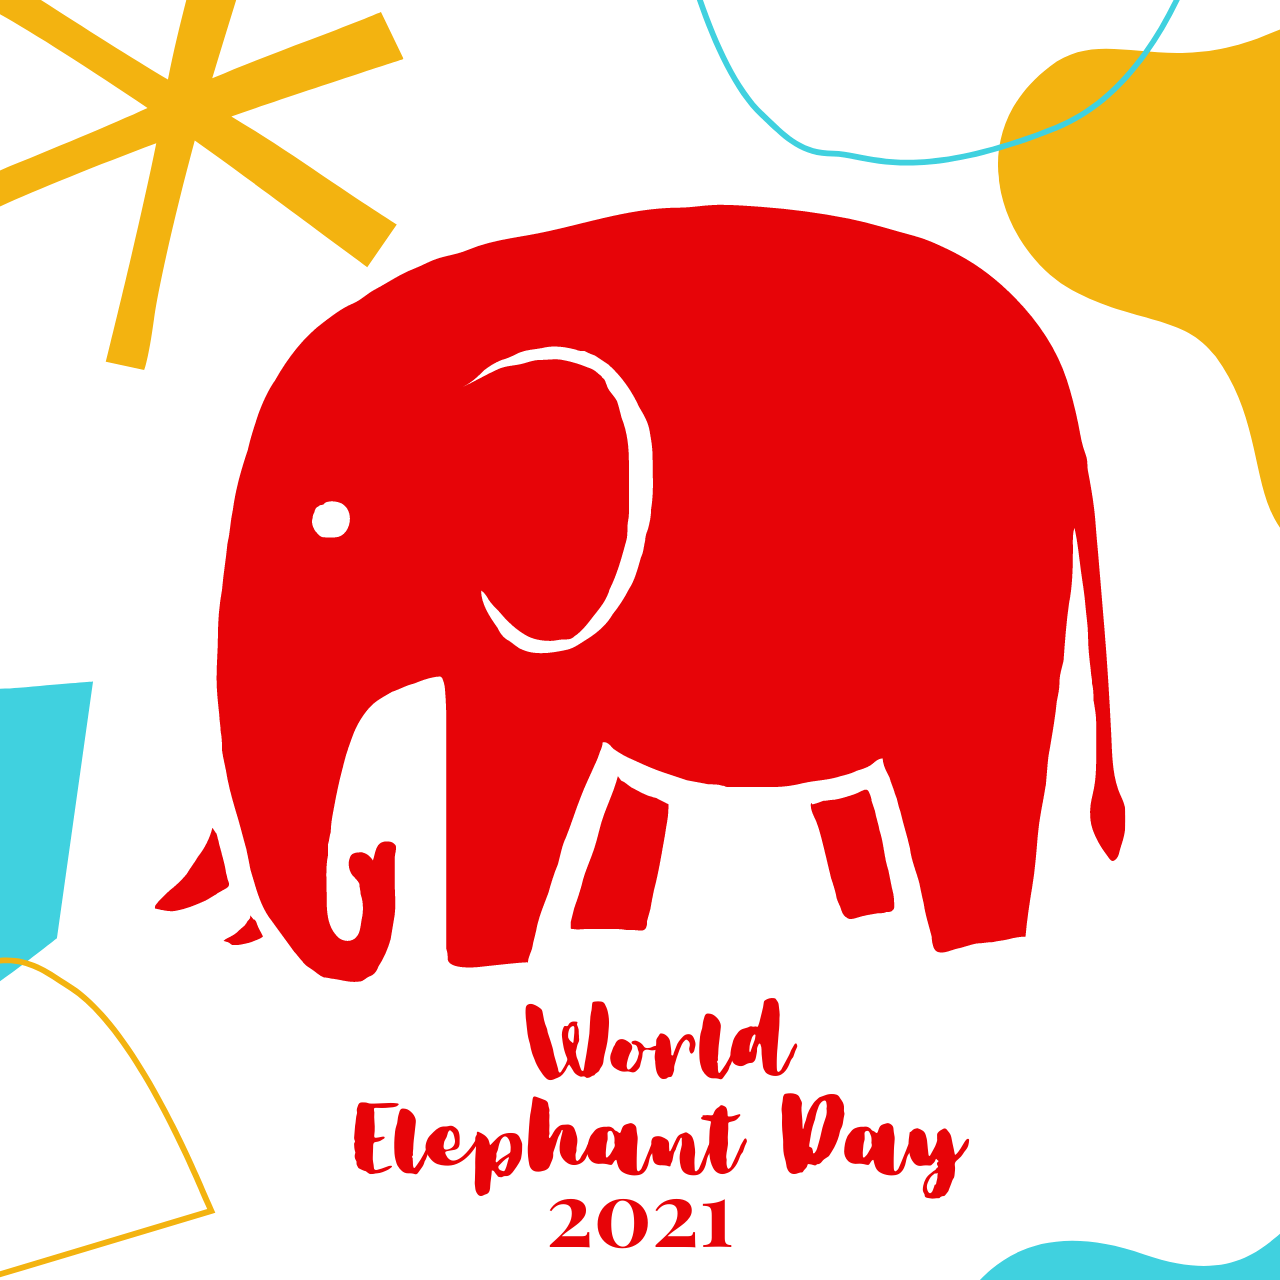 World Elephant Day 2021 Date, Theme, History, Significance, Importance Celebration, Activities, Facts, and more